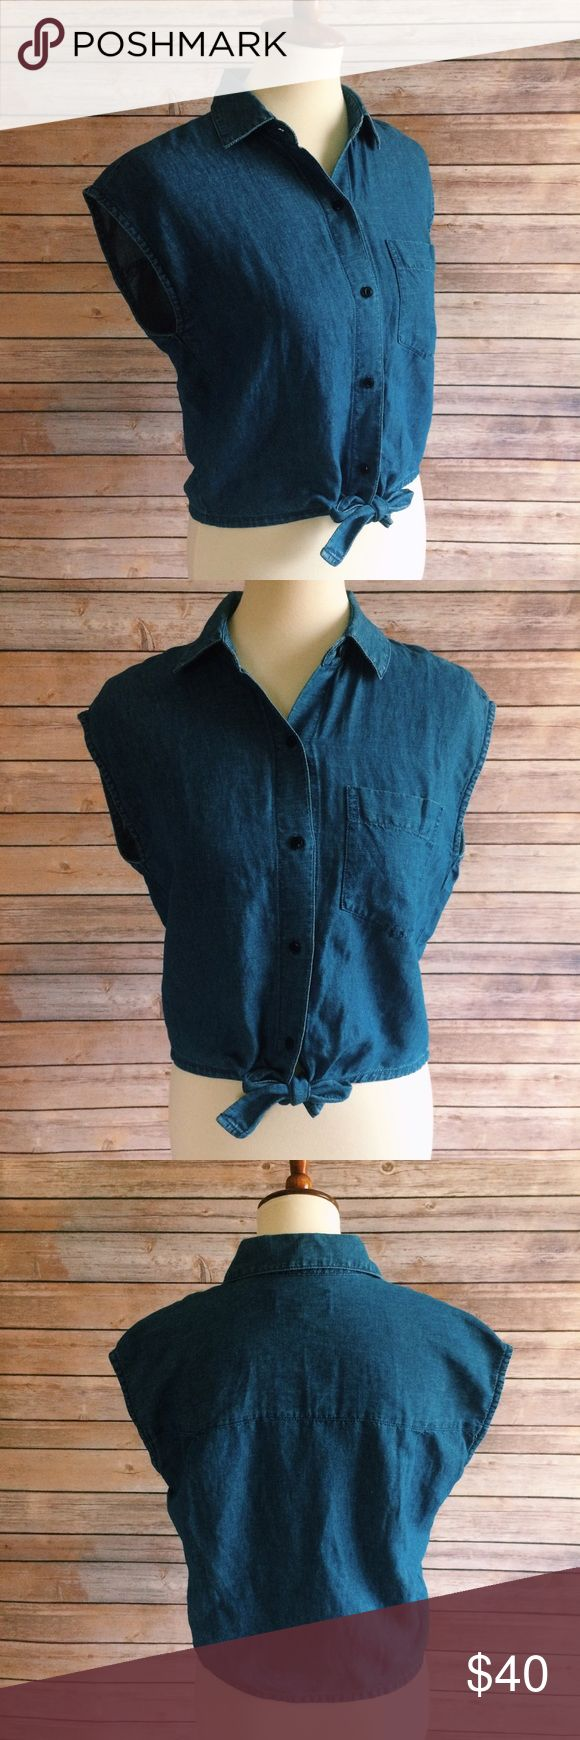 Madewell Denim Sleeveless Tie-Front Top A sleeveless denim shirt with a flattering tie at the waist. So perfect with any and all high risers. Only worn once!   Cropped fit. Cotton/linen. Madewell Tops Crop Tops